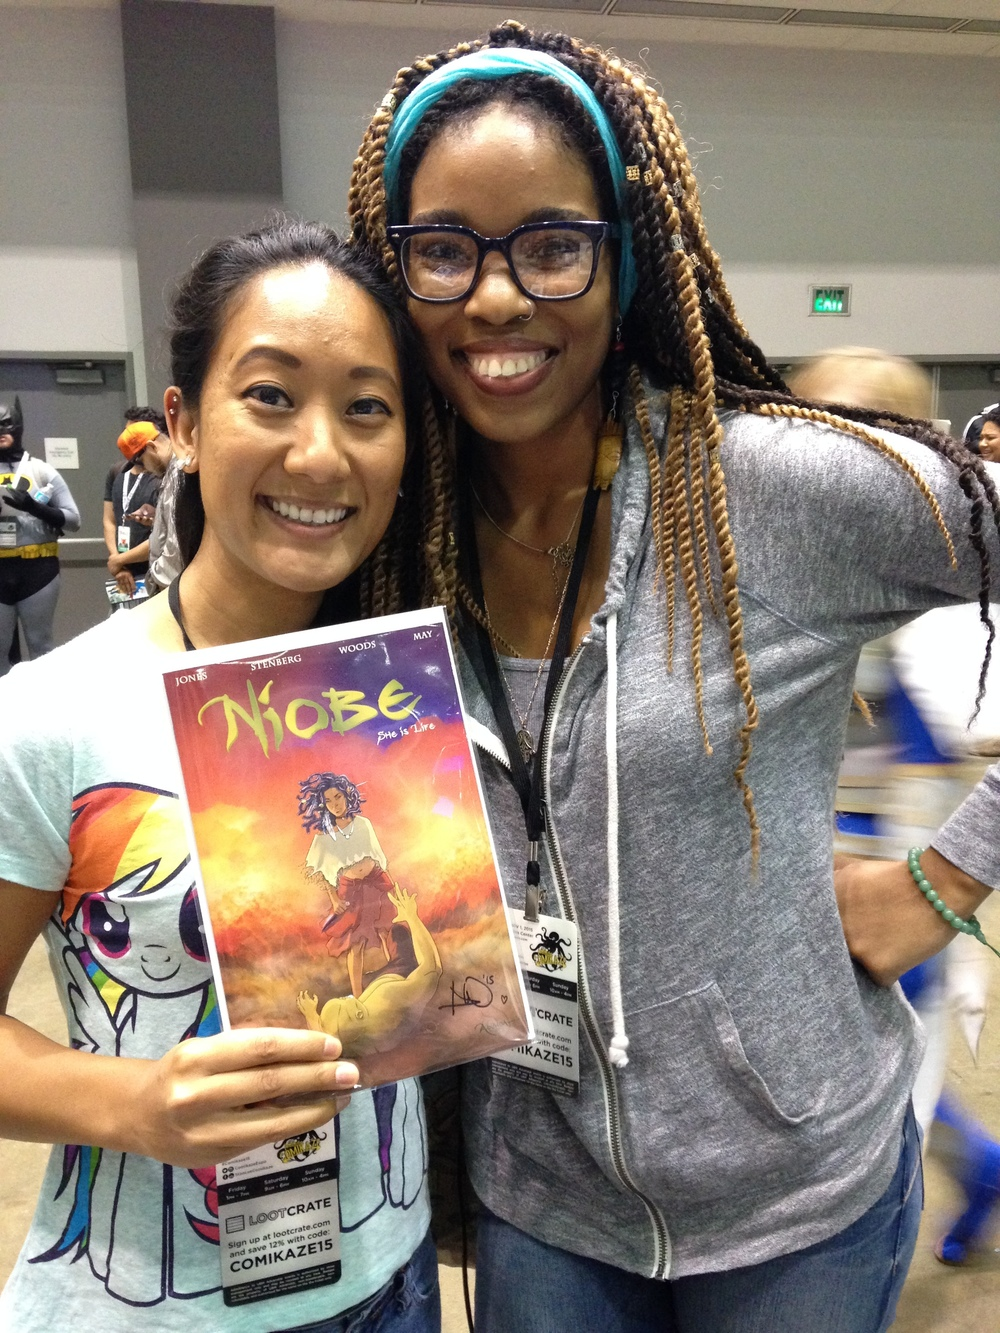 Ashley A. Woods, illustrator for niobe. she is super kind, and enthusiastic. I think she teared up hearing me speak on my love of art and children ^__^ thank you for representing and making an amazing story~